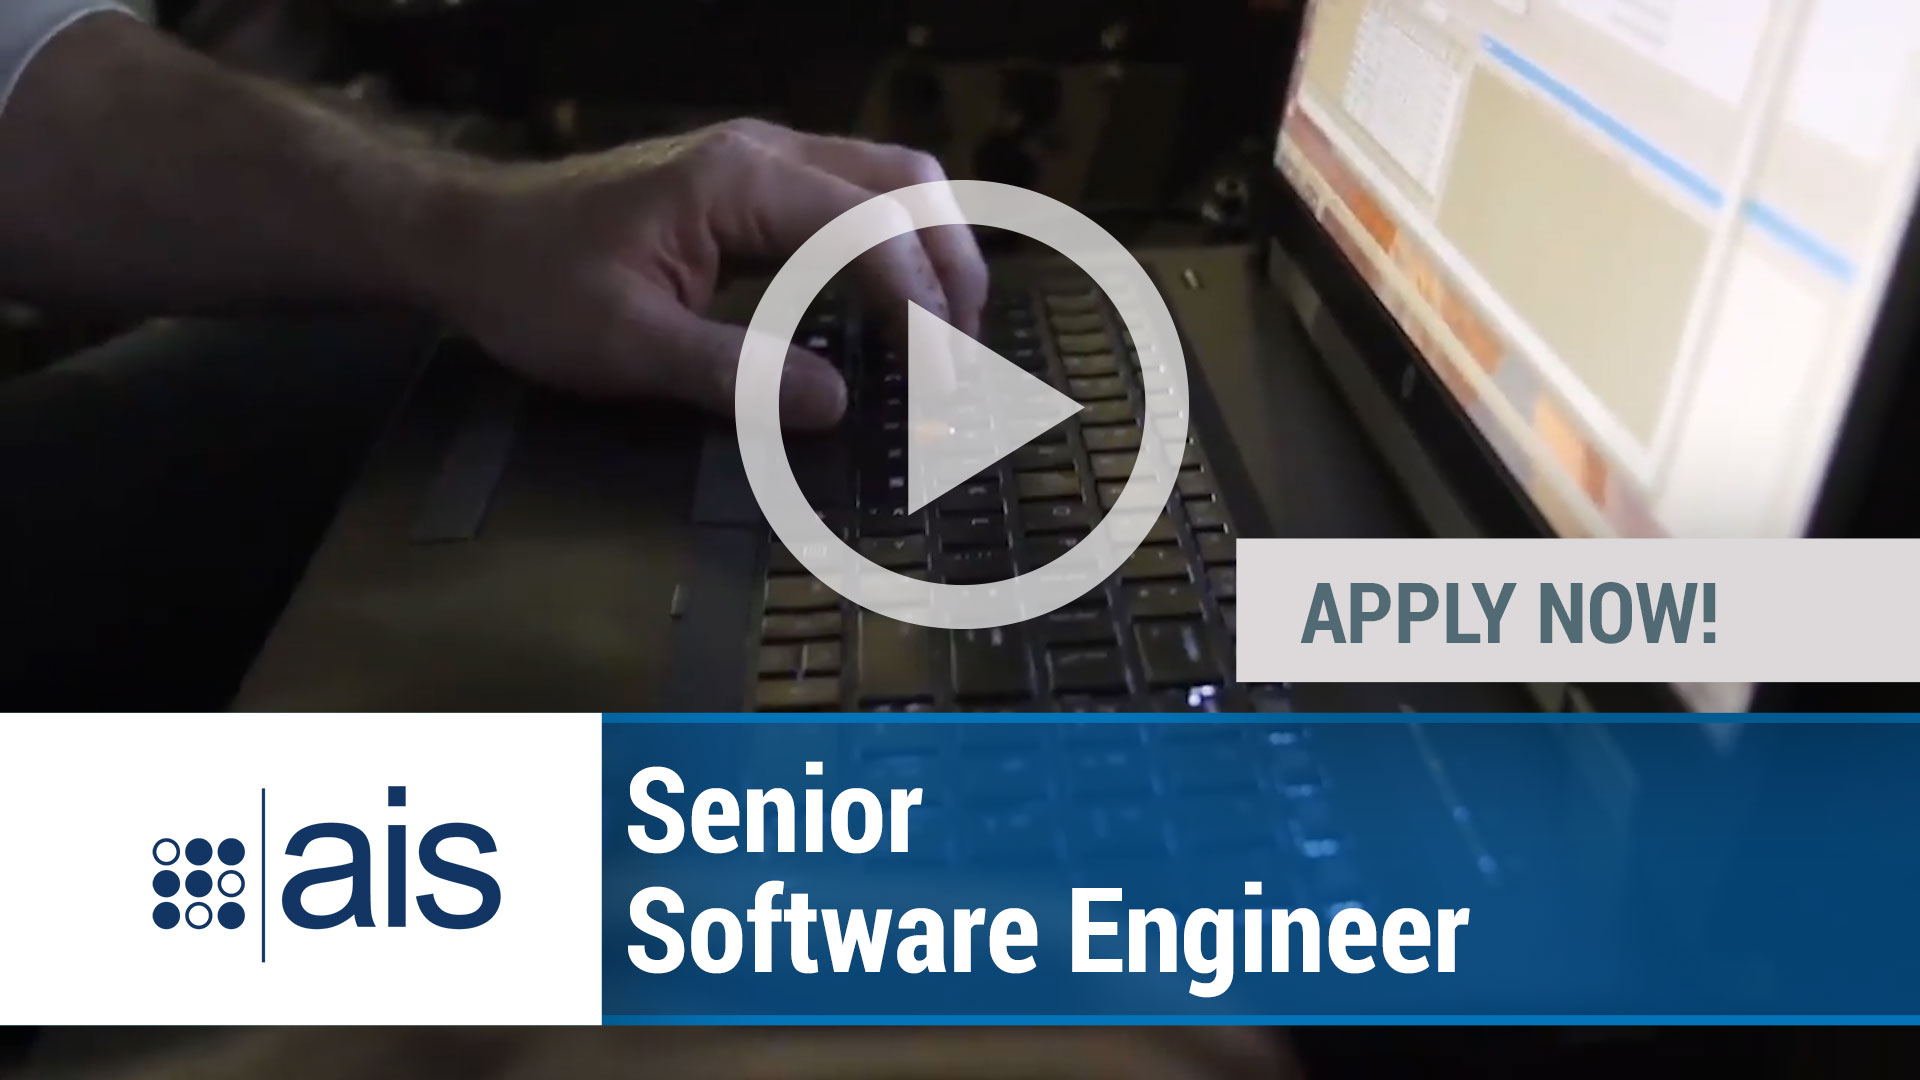 Watch our careers video for available job opening Senior Software Engineer in Rome, Rochester, Syracuse, Lo